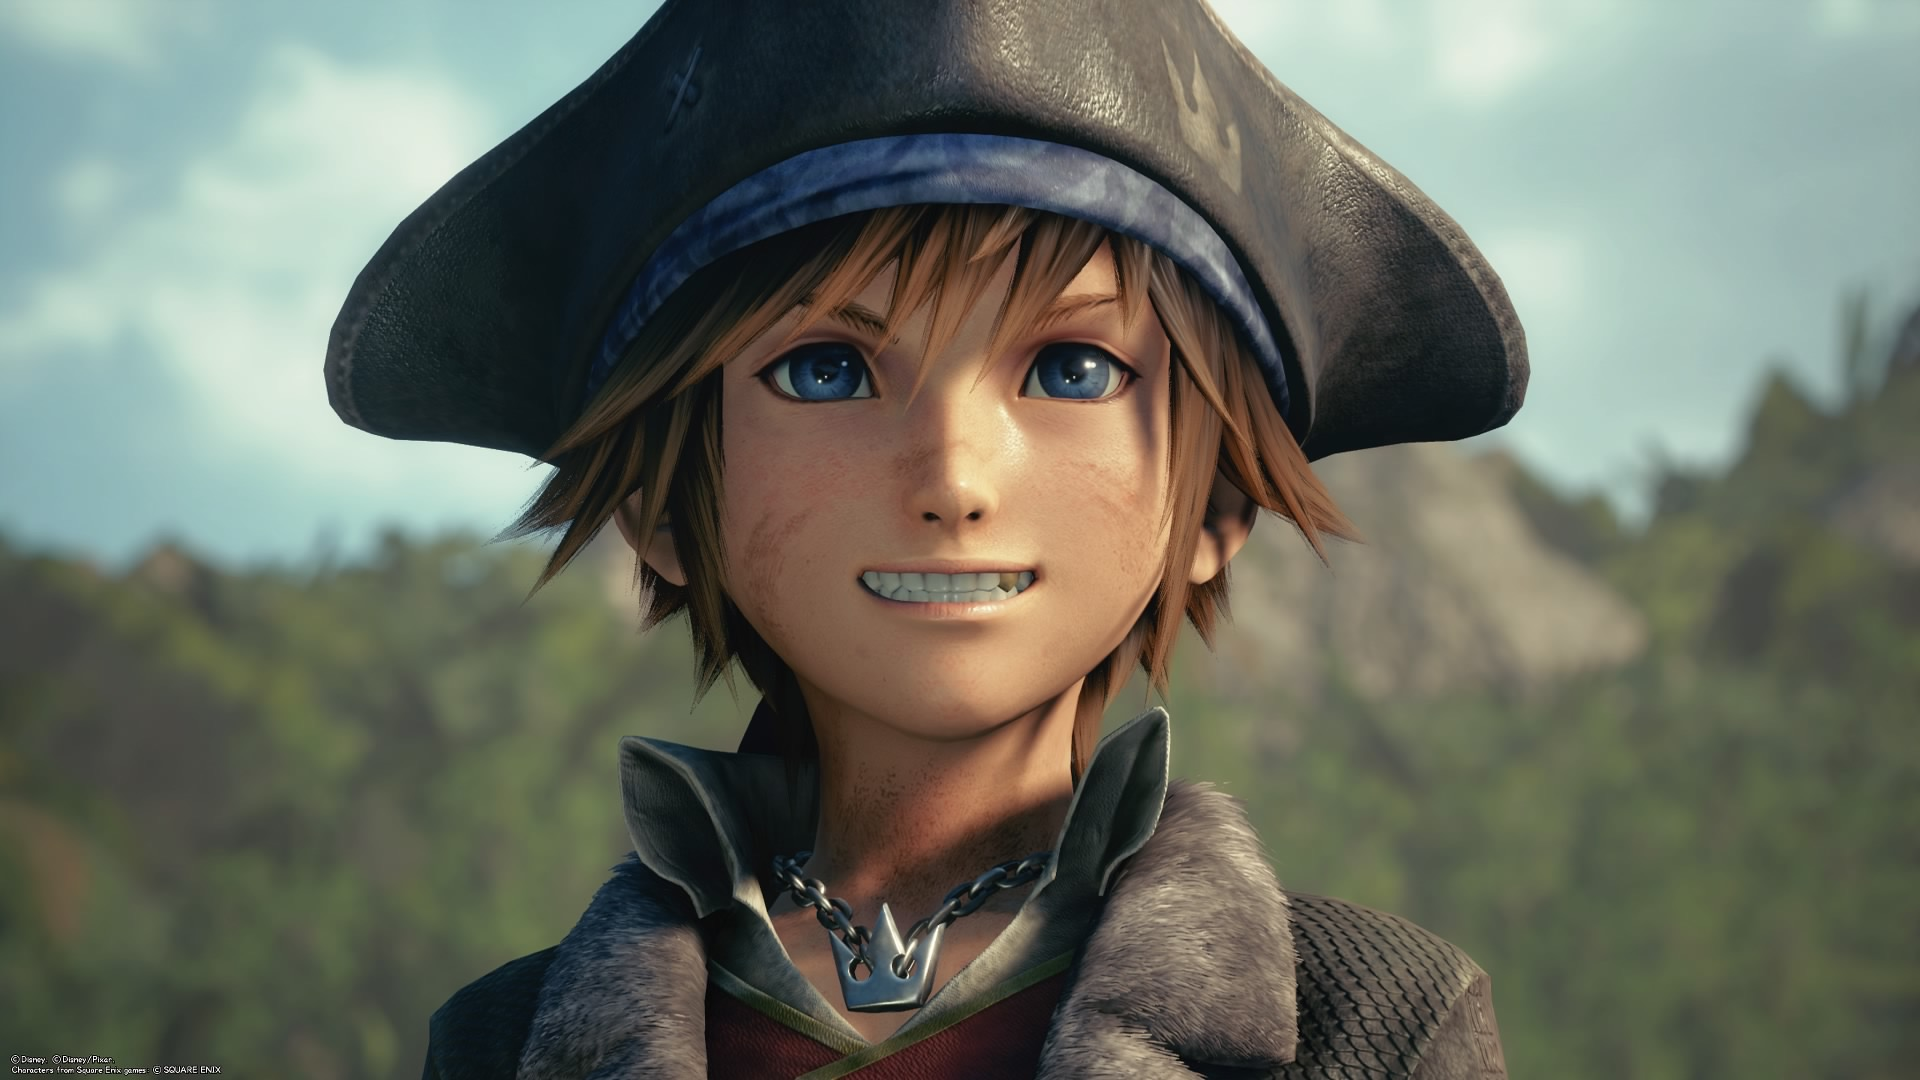 The beautiful fairy tale of Disney conceals an astonishing amount of darkness. Kingdom Hearts 3 - Review